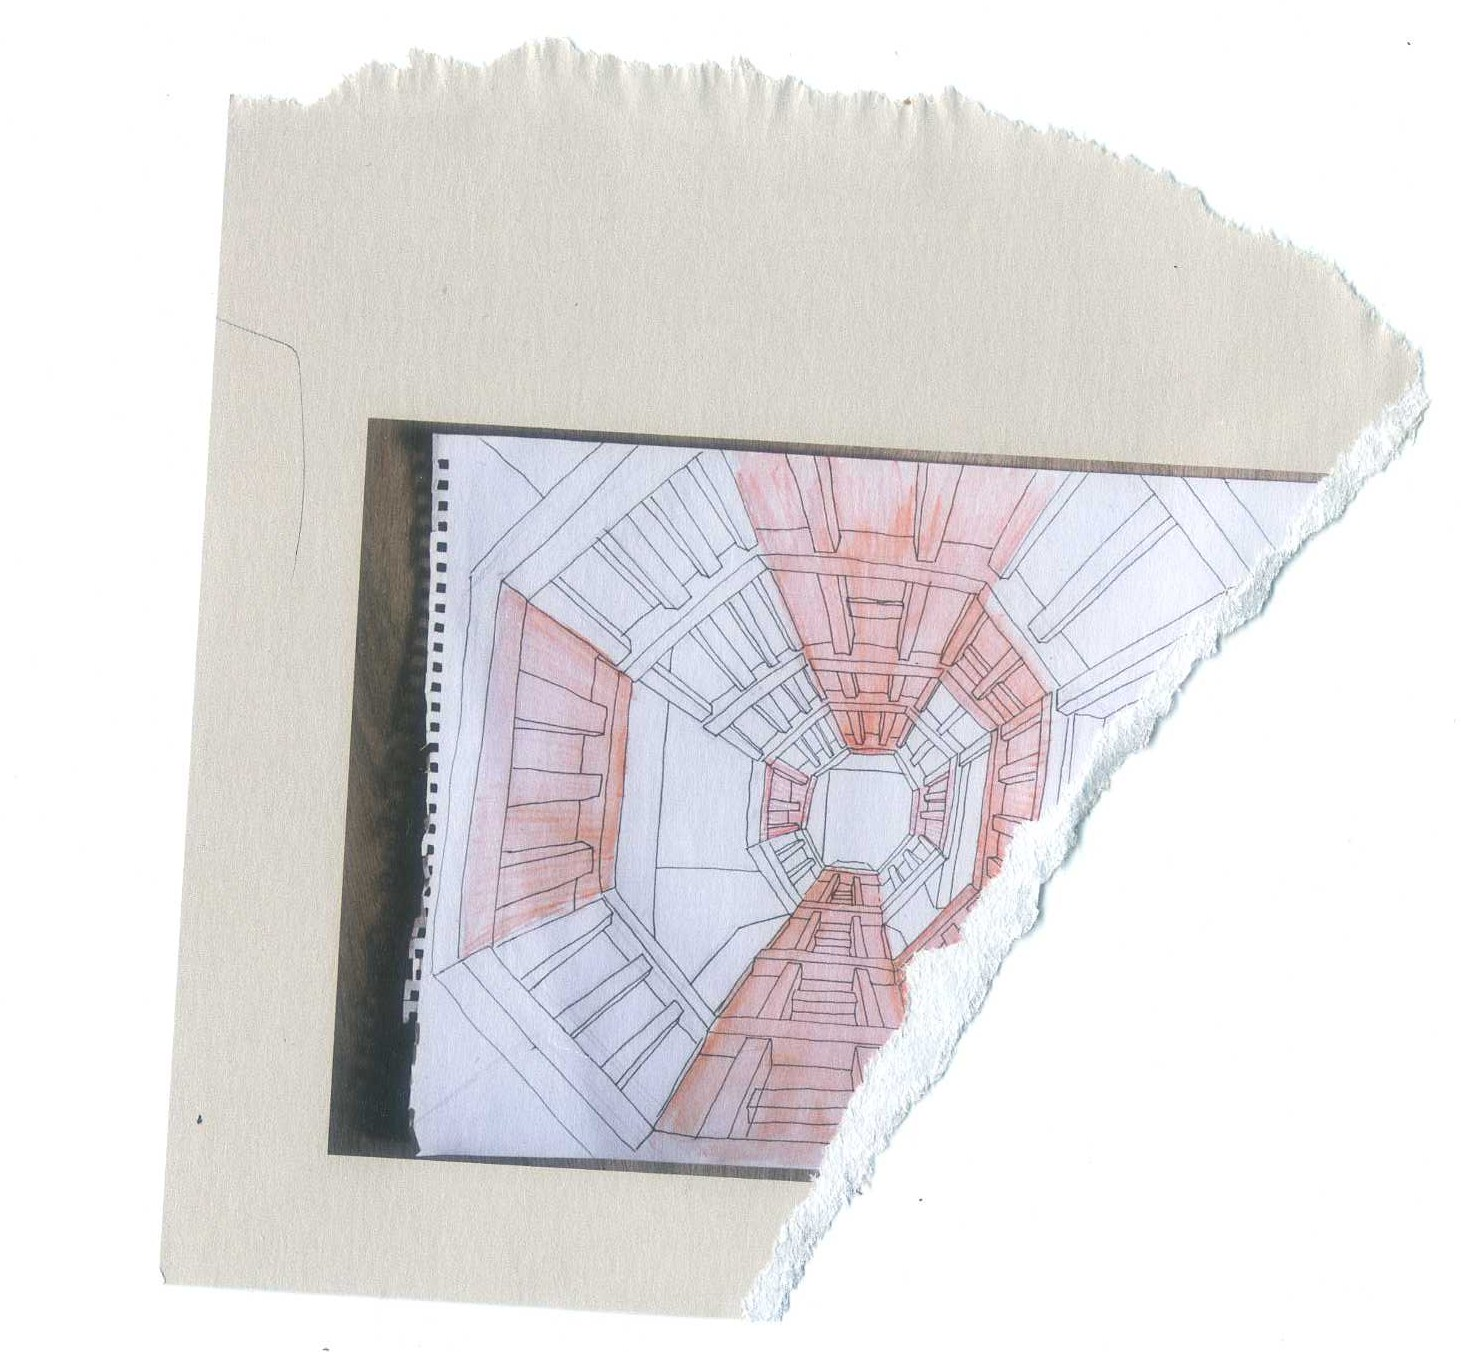 1461x1352 Octagon' Tunnel Drawing And Mapping